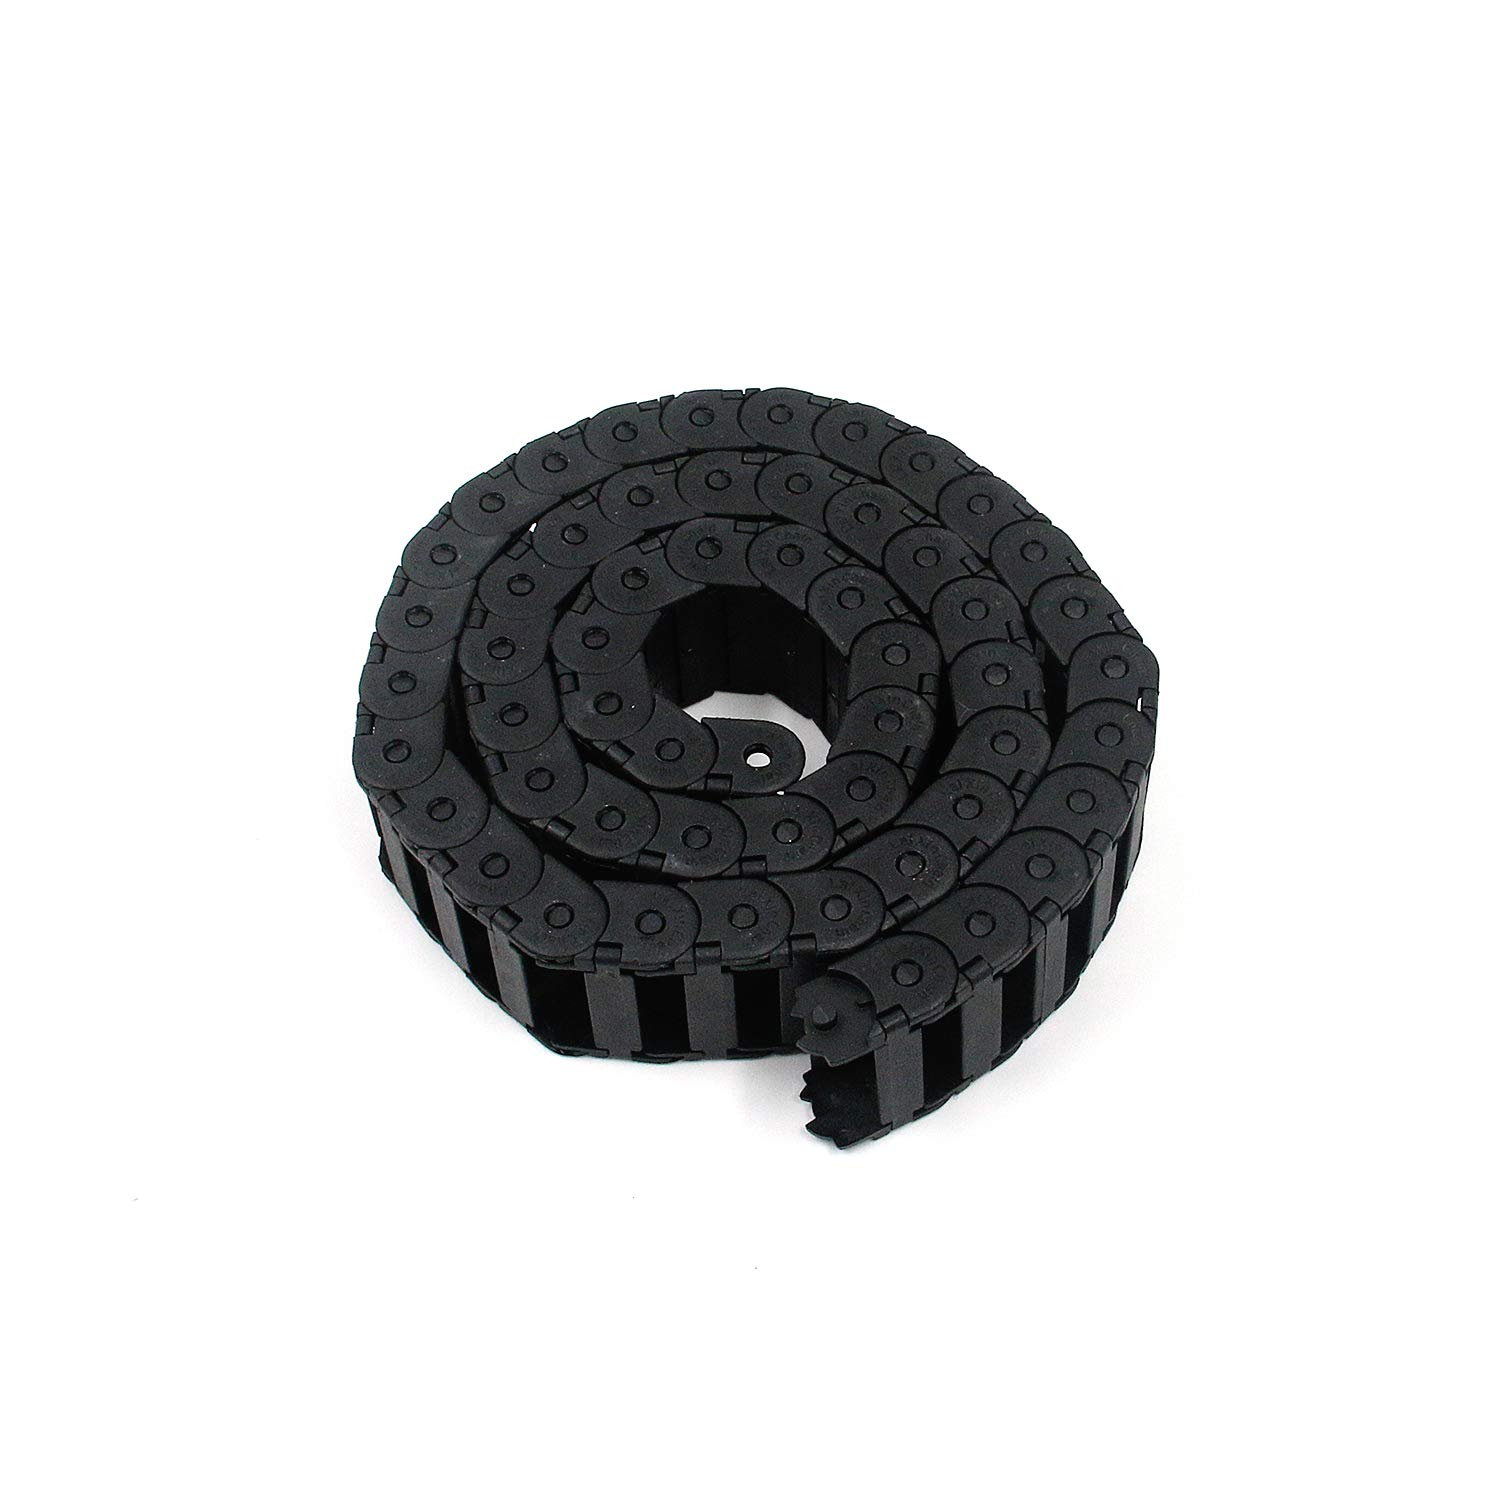 Karcy Drag Chain Nylon Black Cable Drag Chain Wire Carrier for 3D Printer and CNC Machine 1m//3.3 FT Length 15mm x 30mm Internal Size Pack of 1